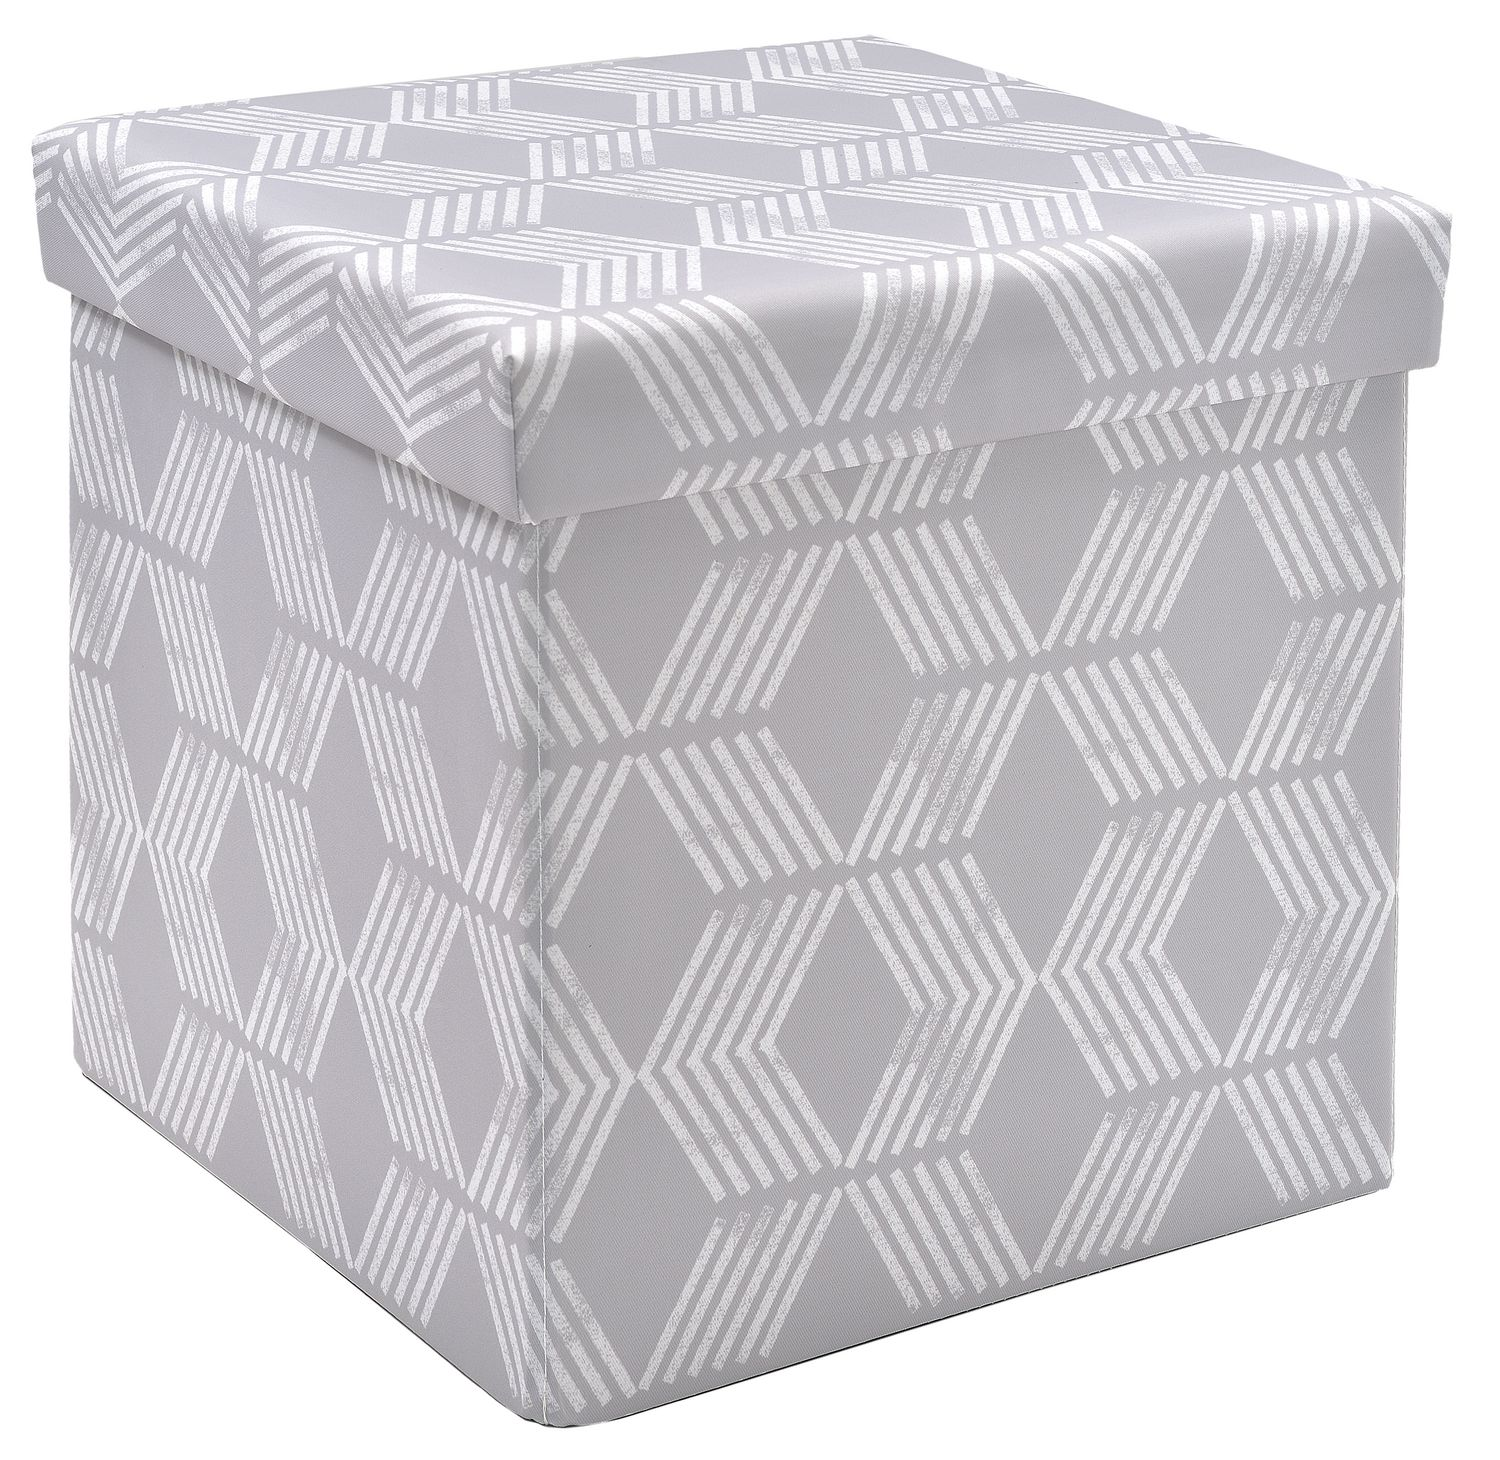 Awe Inspiring Fhe Group Red Label Foldable Storage Cube Grey Chevron Caraccident5 Cool Chair Designs And Ideas Caraccident5Info